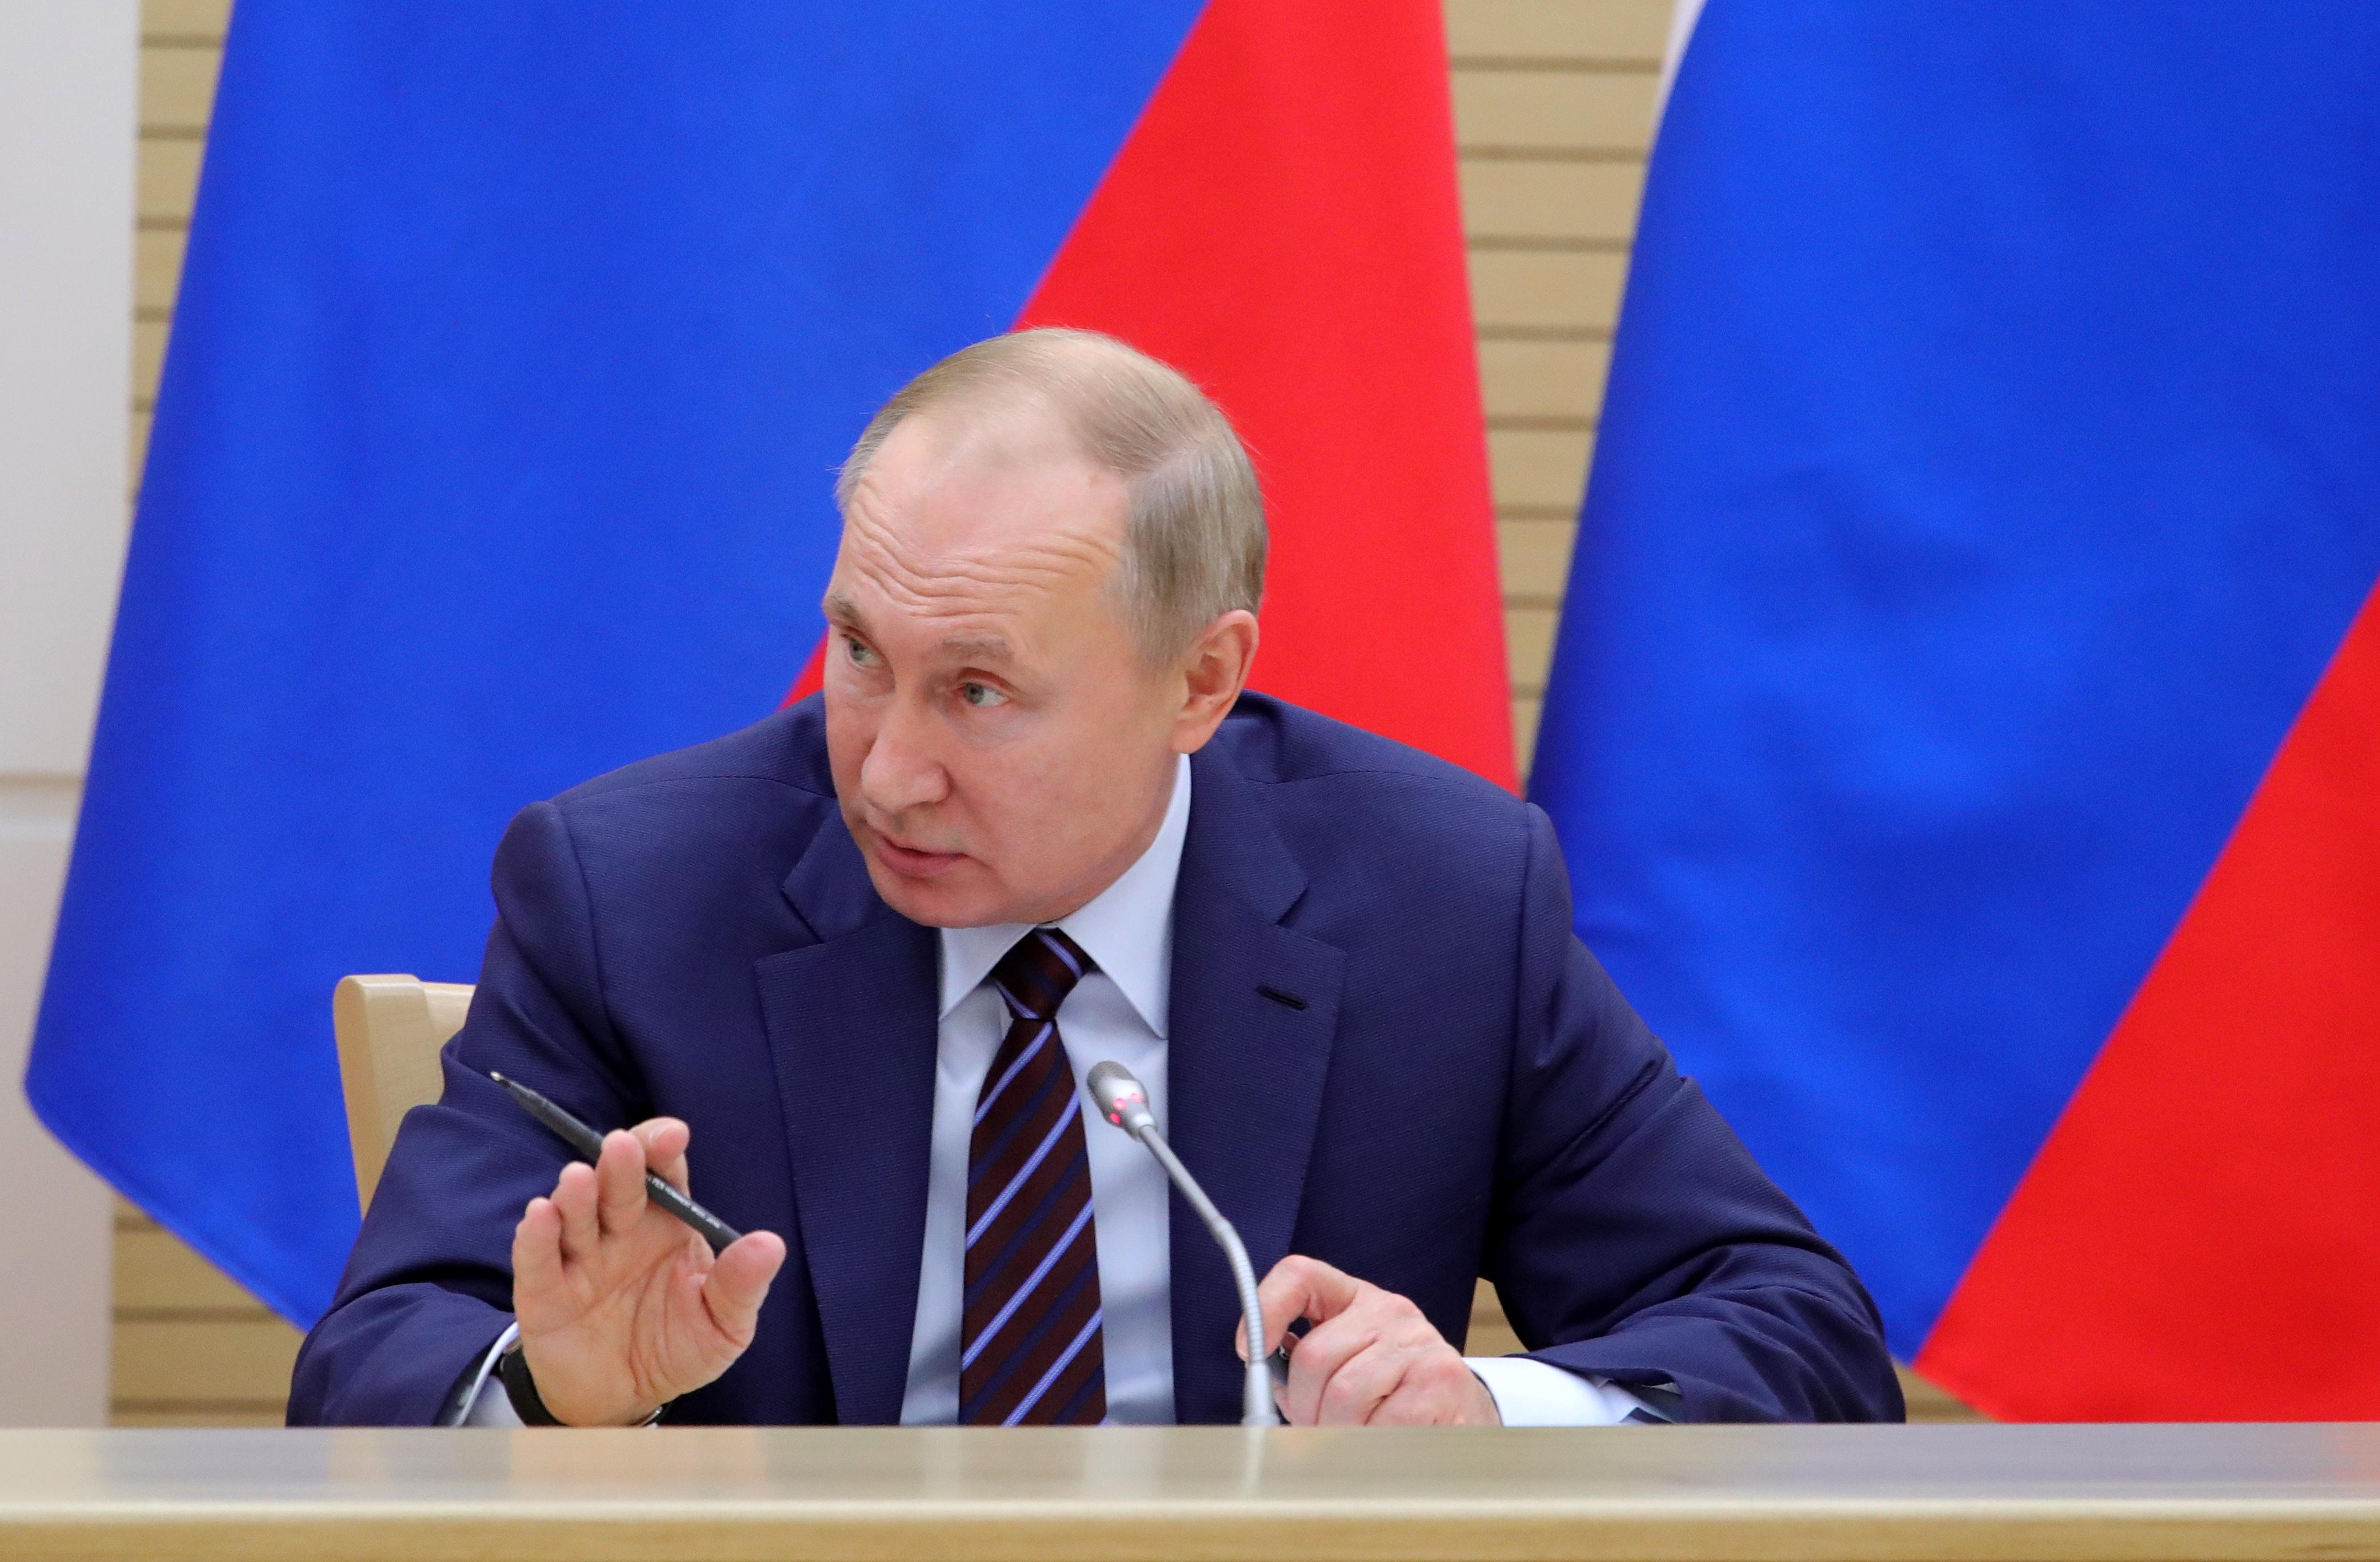 Explainer: How Putin's shake-up of Russian politics could pan out